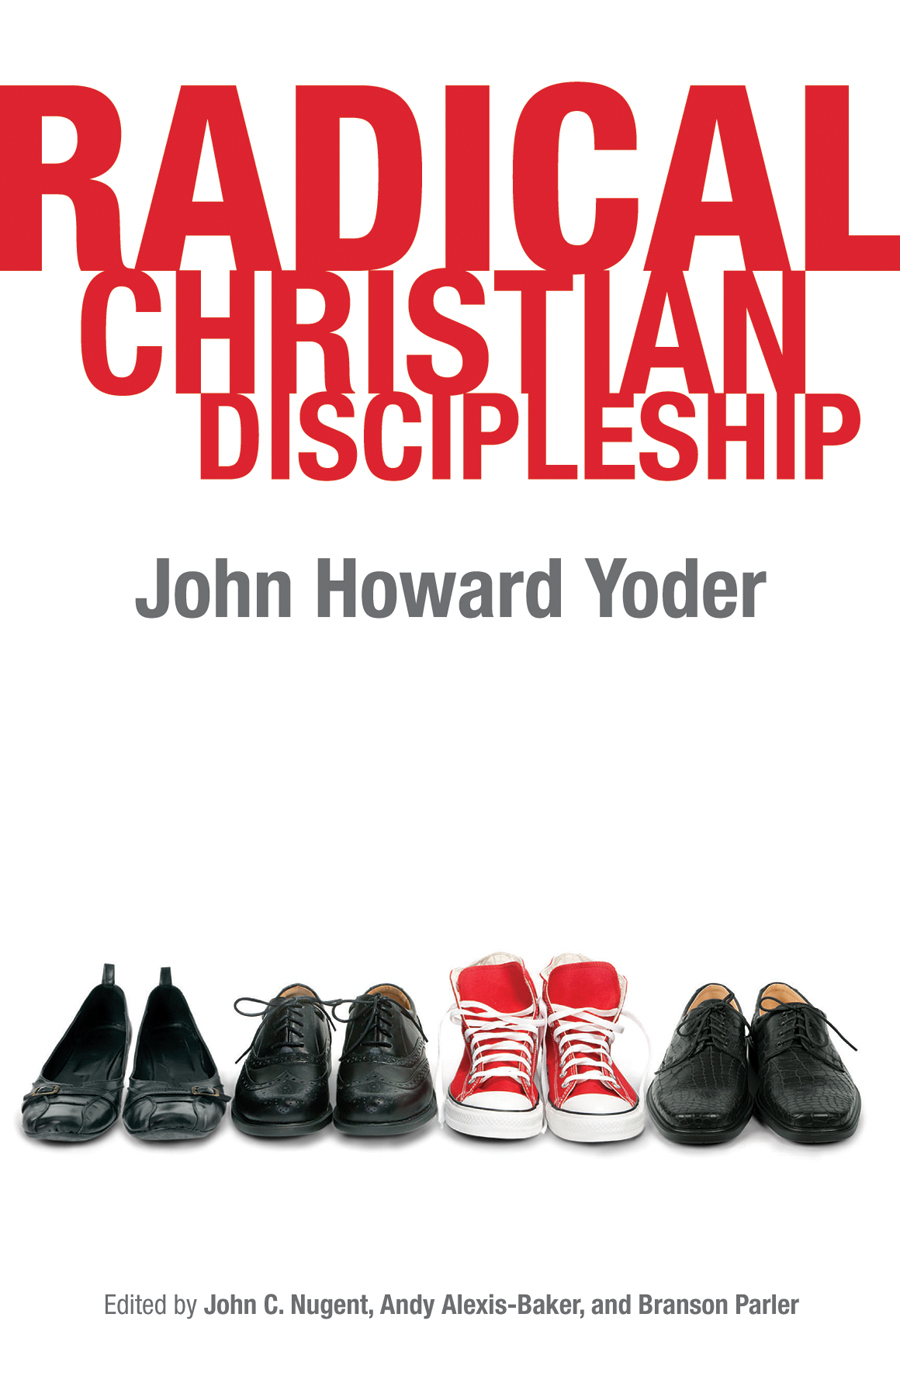 Radical Christian Discipleship (color).jpg